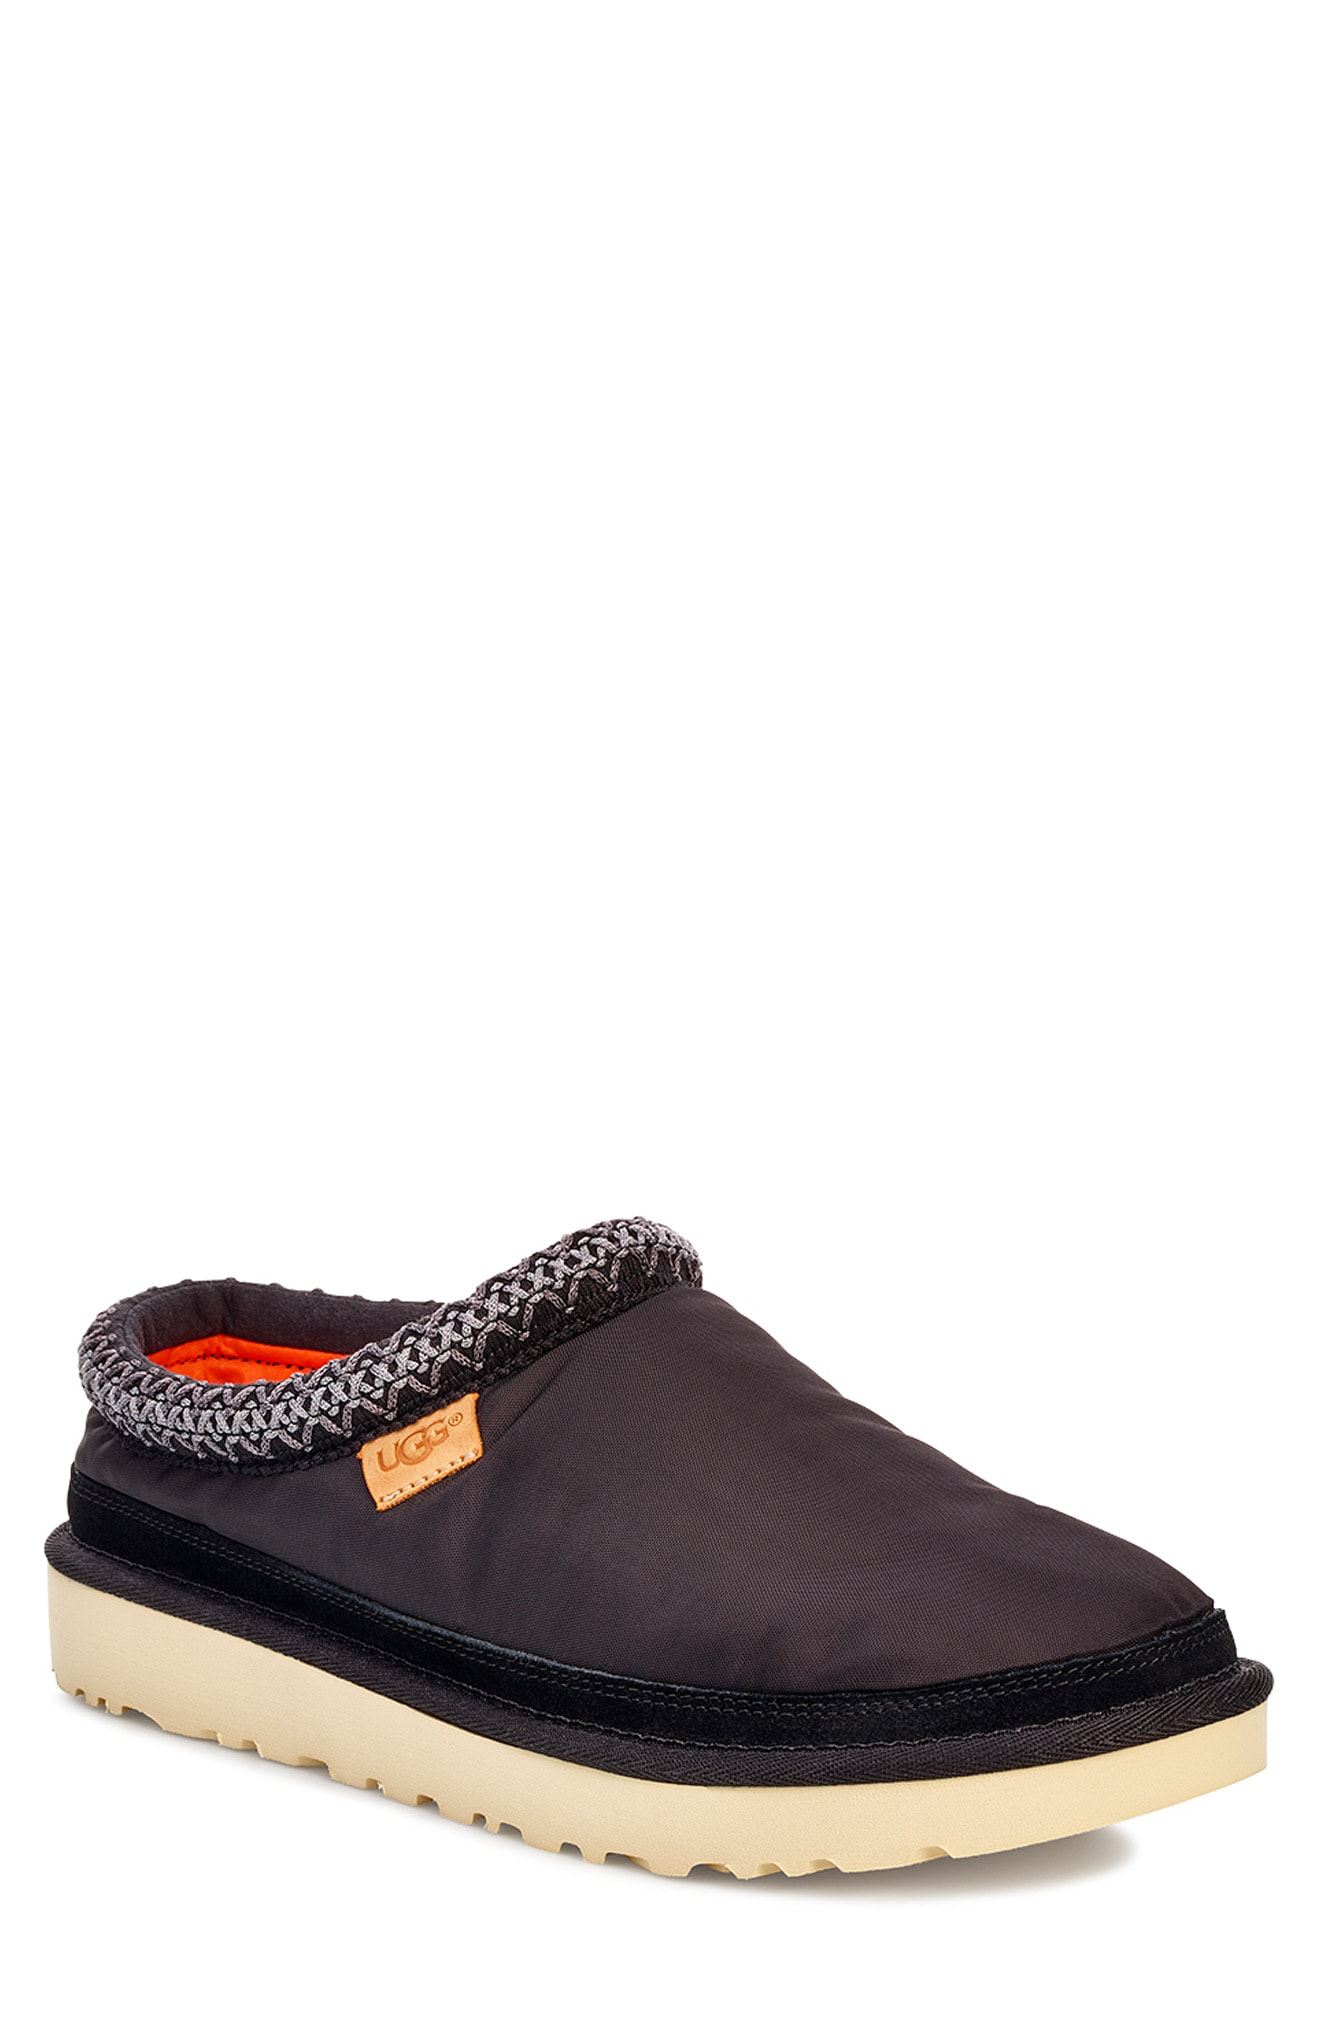 a6edbacae86 Ugg Tasman Slipper in Black